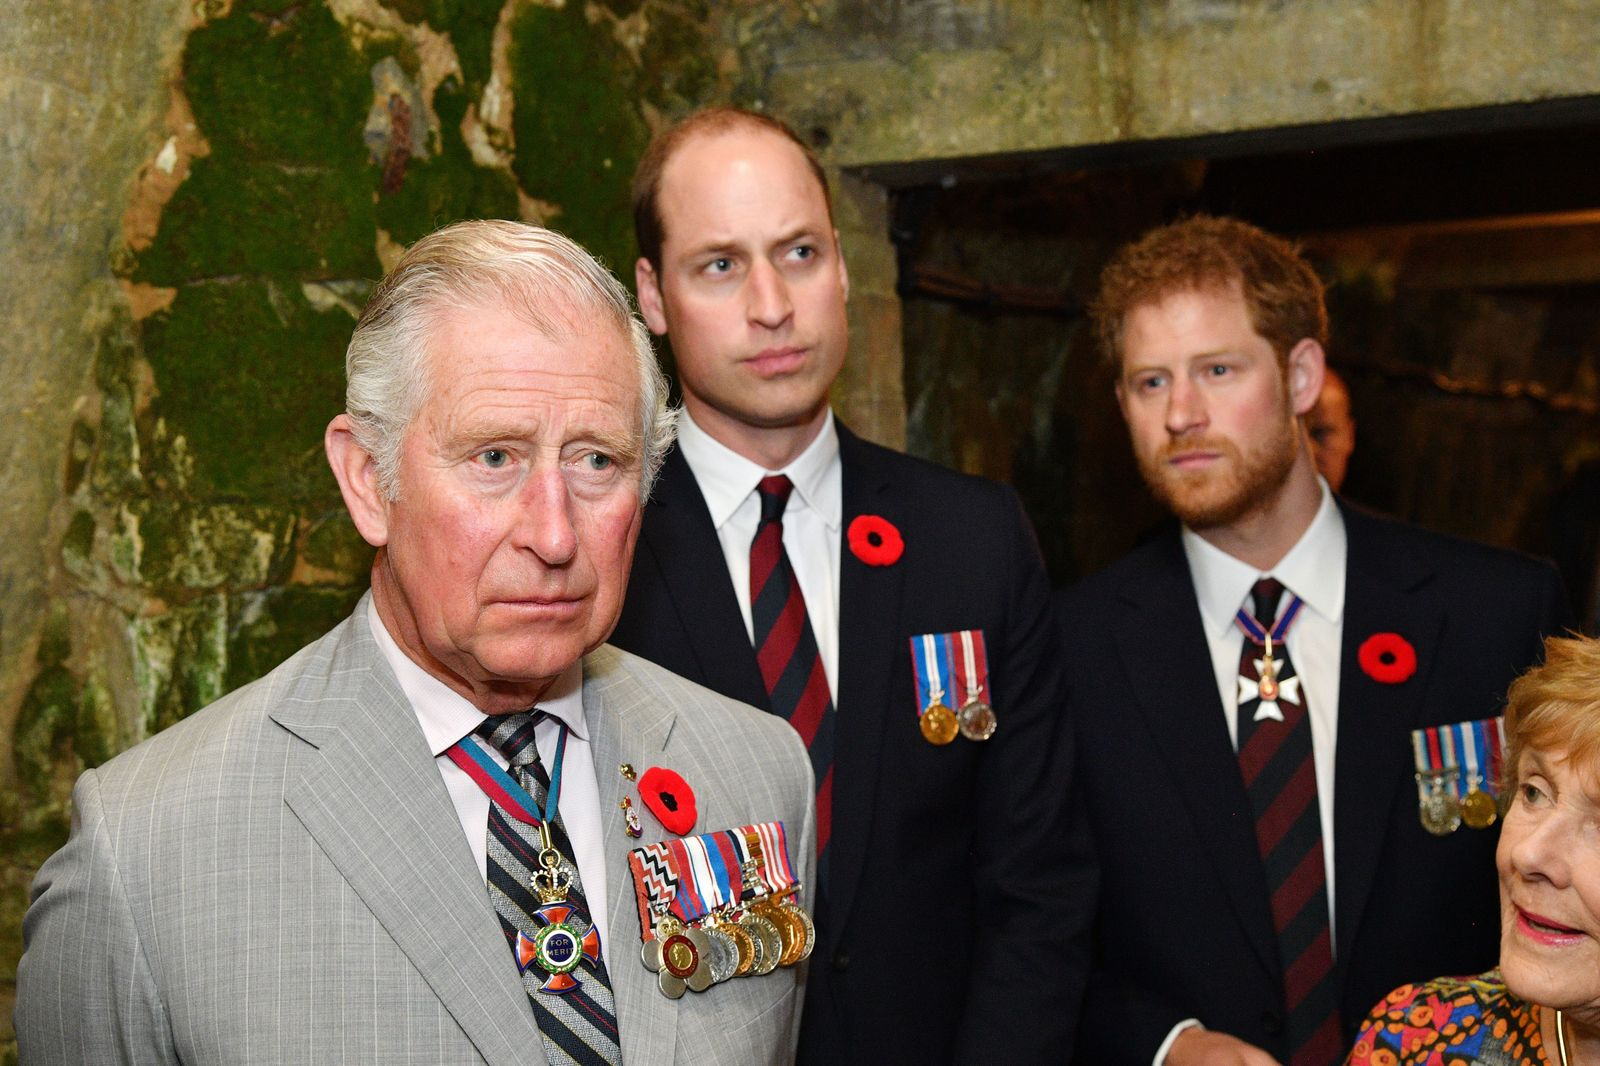 Prince Charles, Prince William, and Prince Harry visit the tunnel and trenches at Vimy Memorial Park on April 9, 2017 in Vimy, France. | Photo: Getty Images